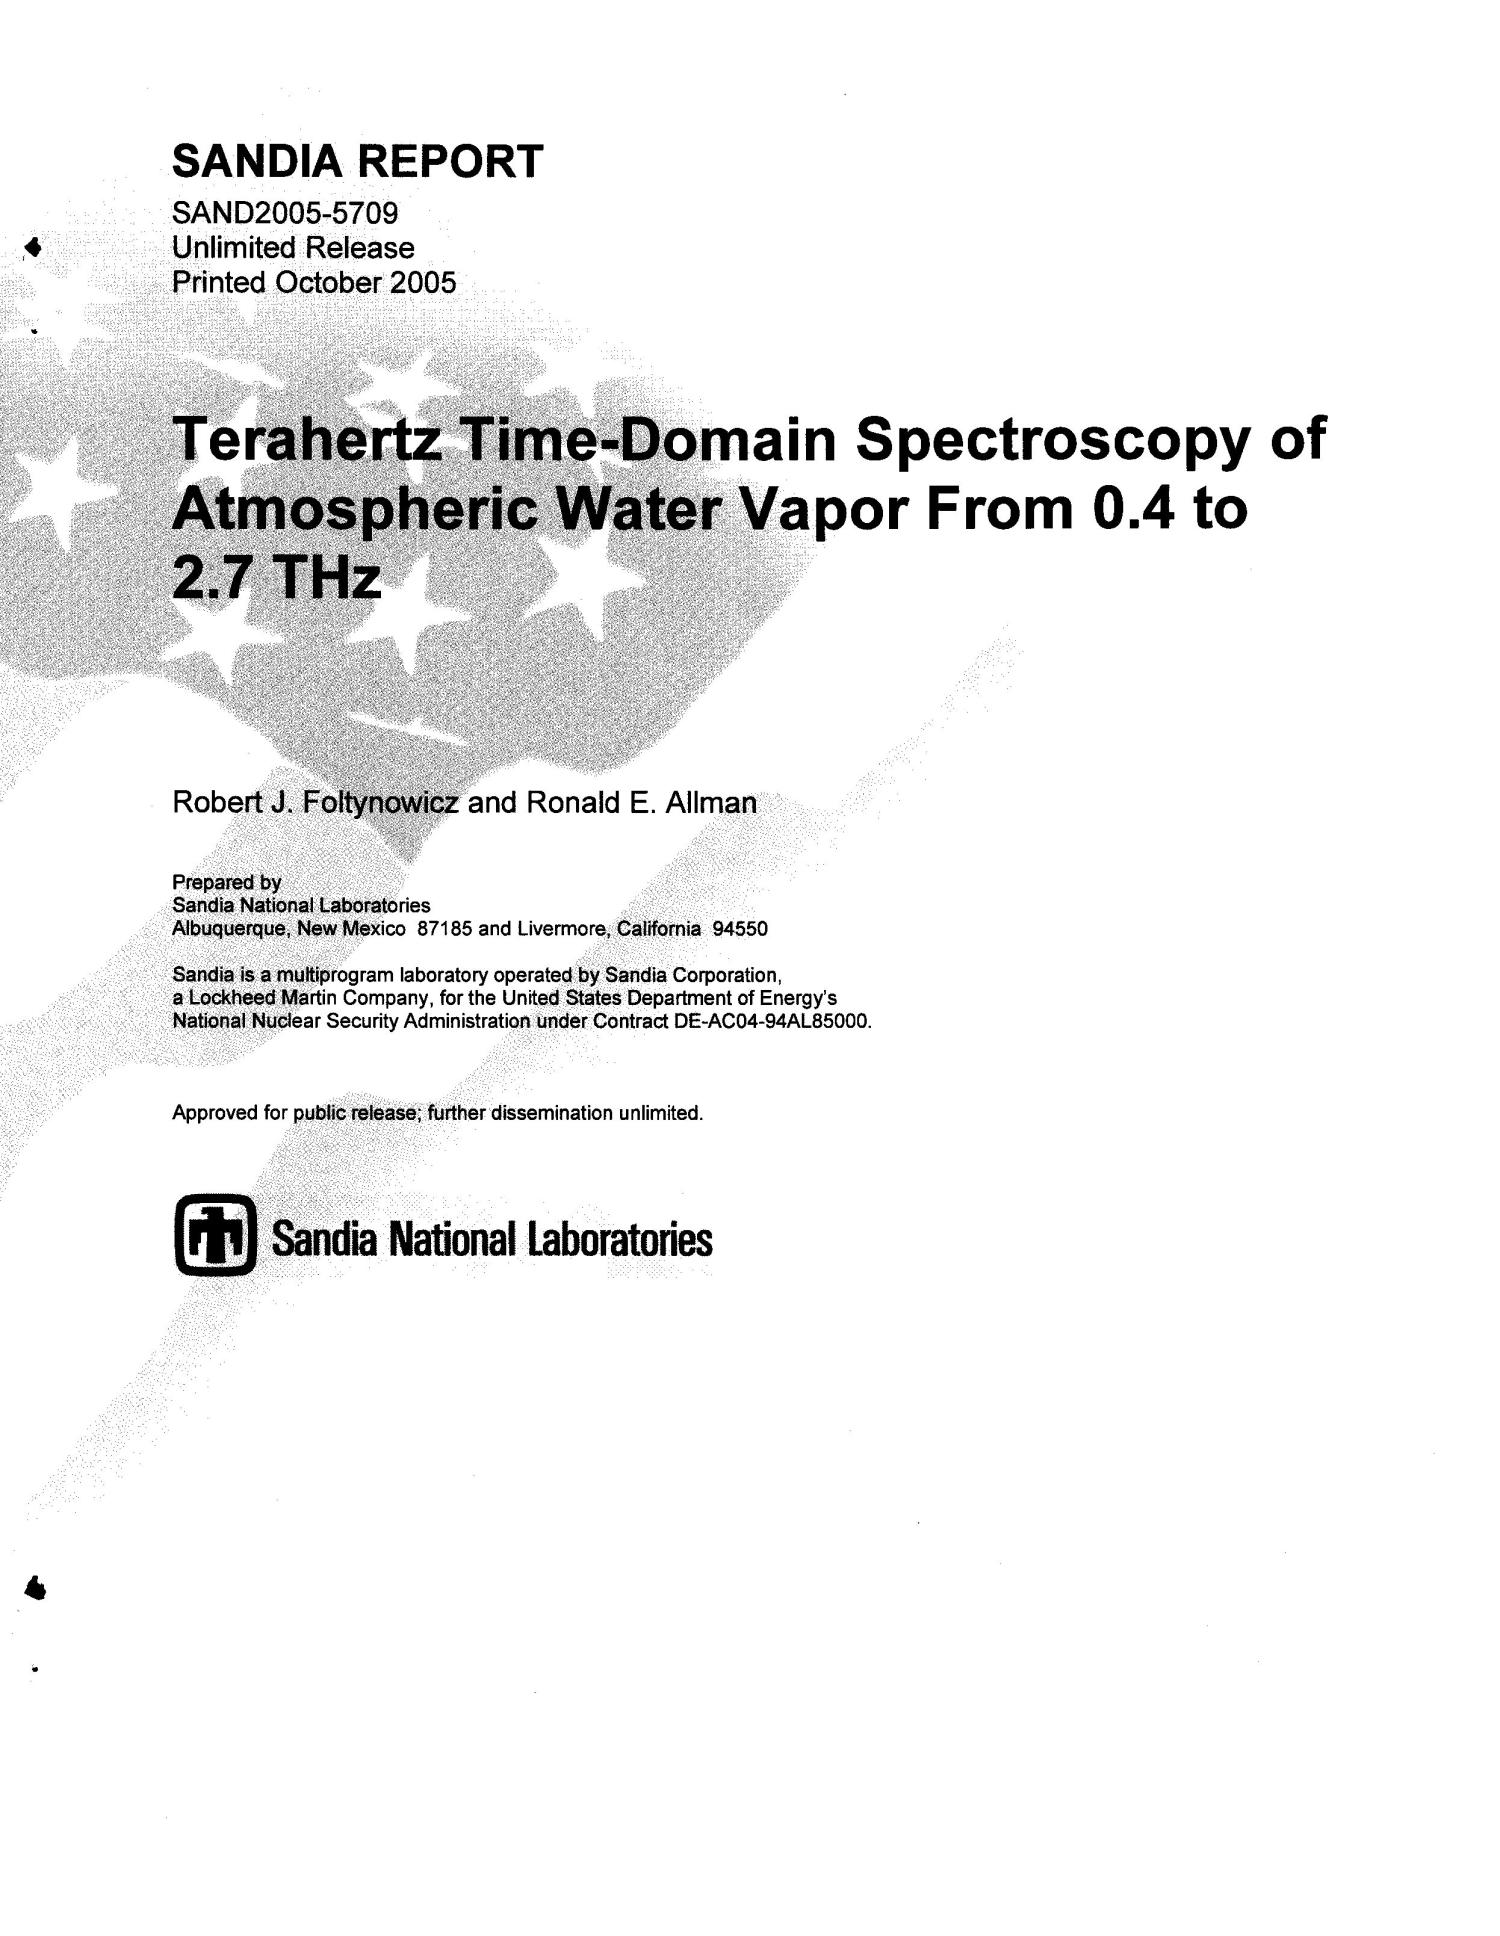 Terahertz time-domain spectroscopy of atmospheric water vapor from 0.4 to 2.7 THz.                                                                                                      [Sequence #]: 1 of 16